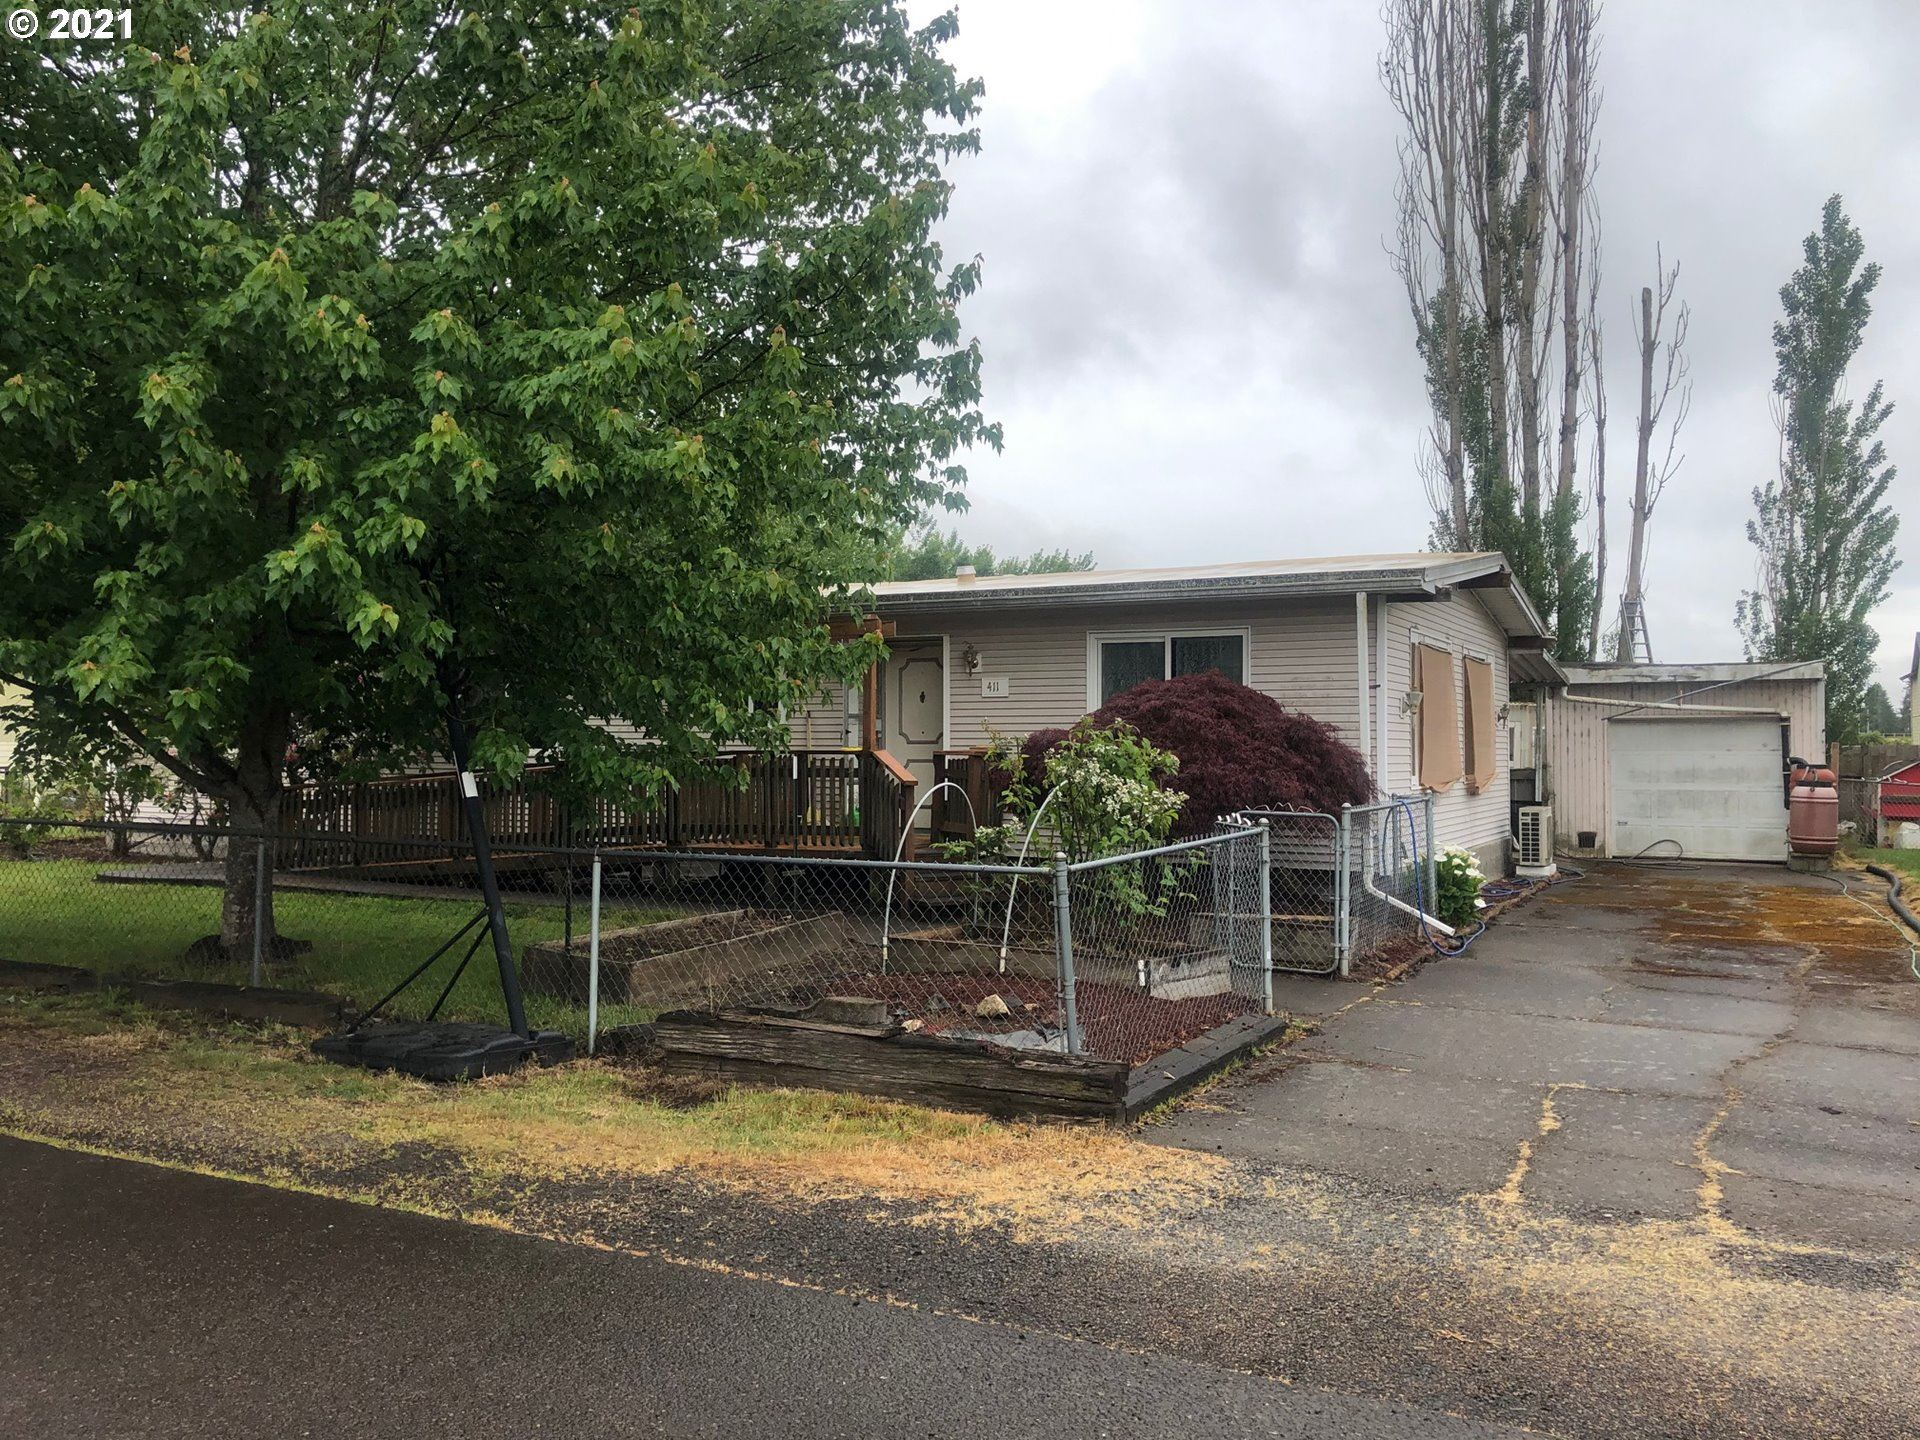 411 WOLFE AVE, Amity, OR 97101 - MLS#: 21126301